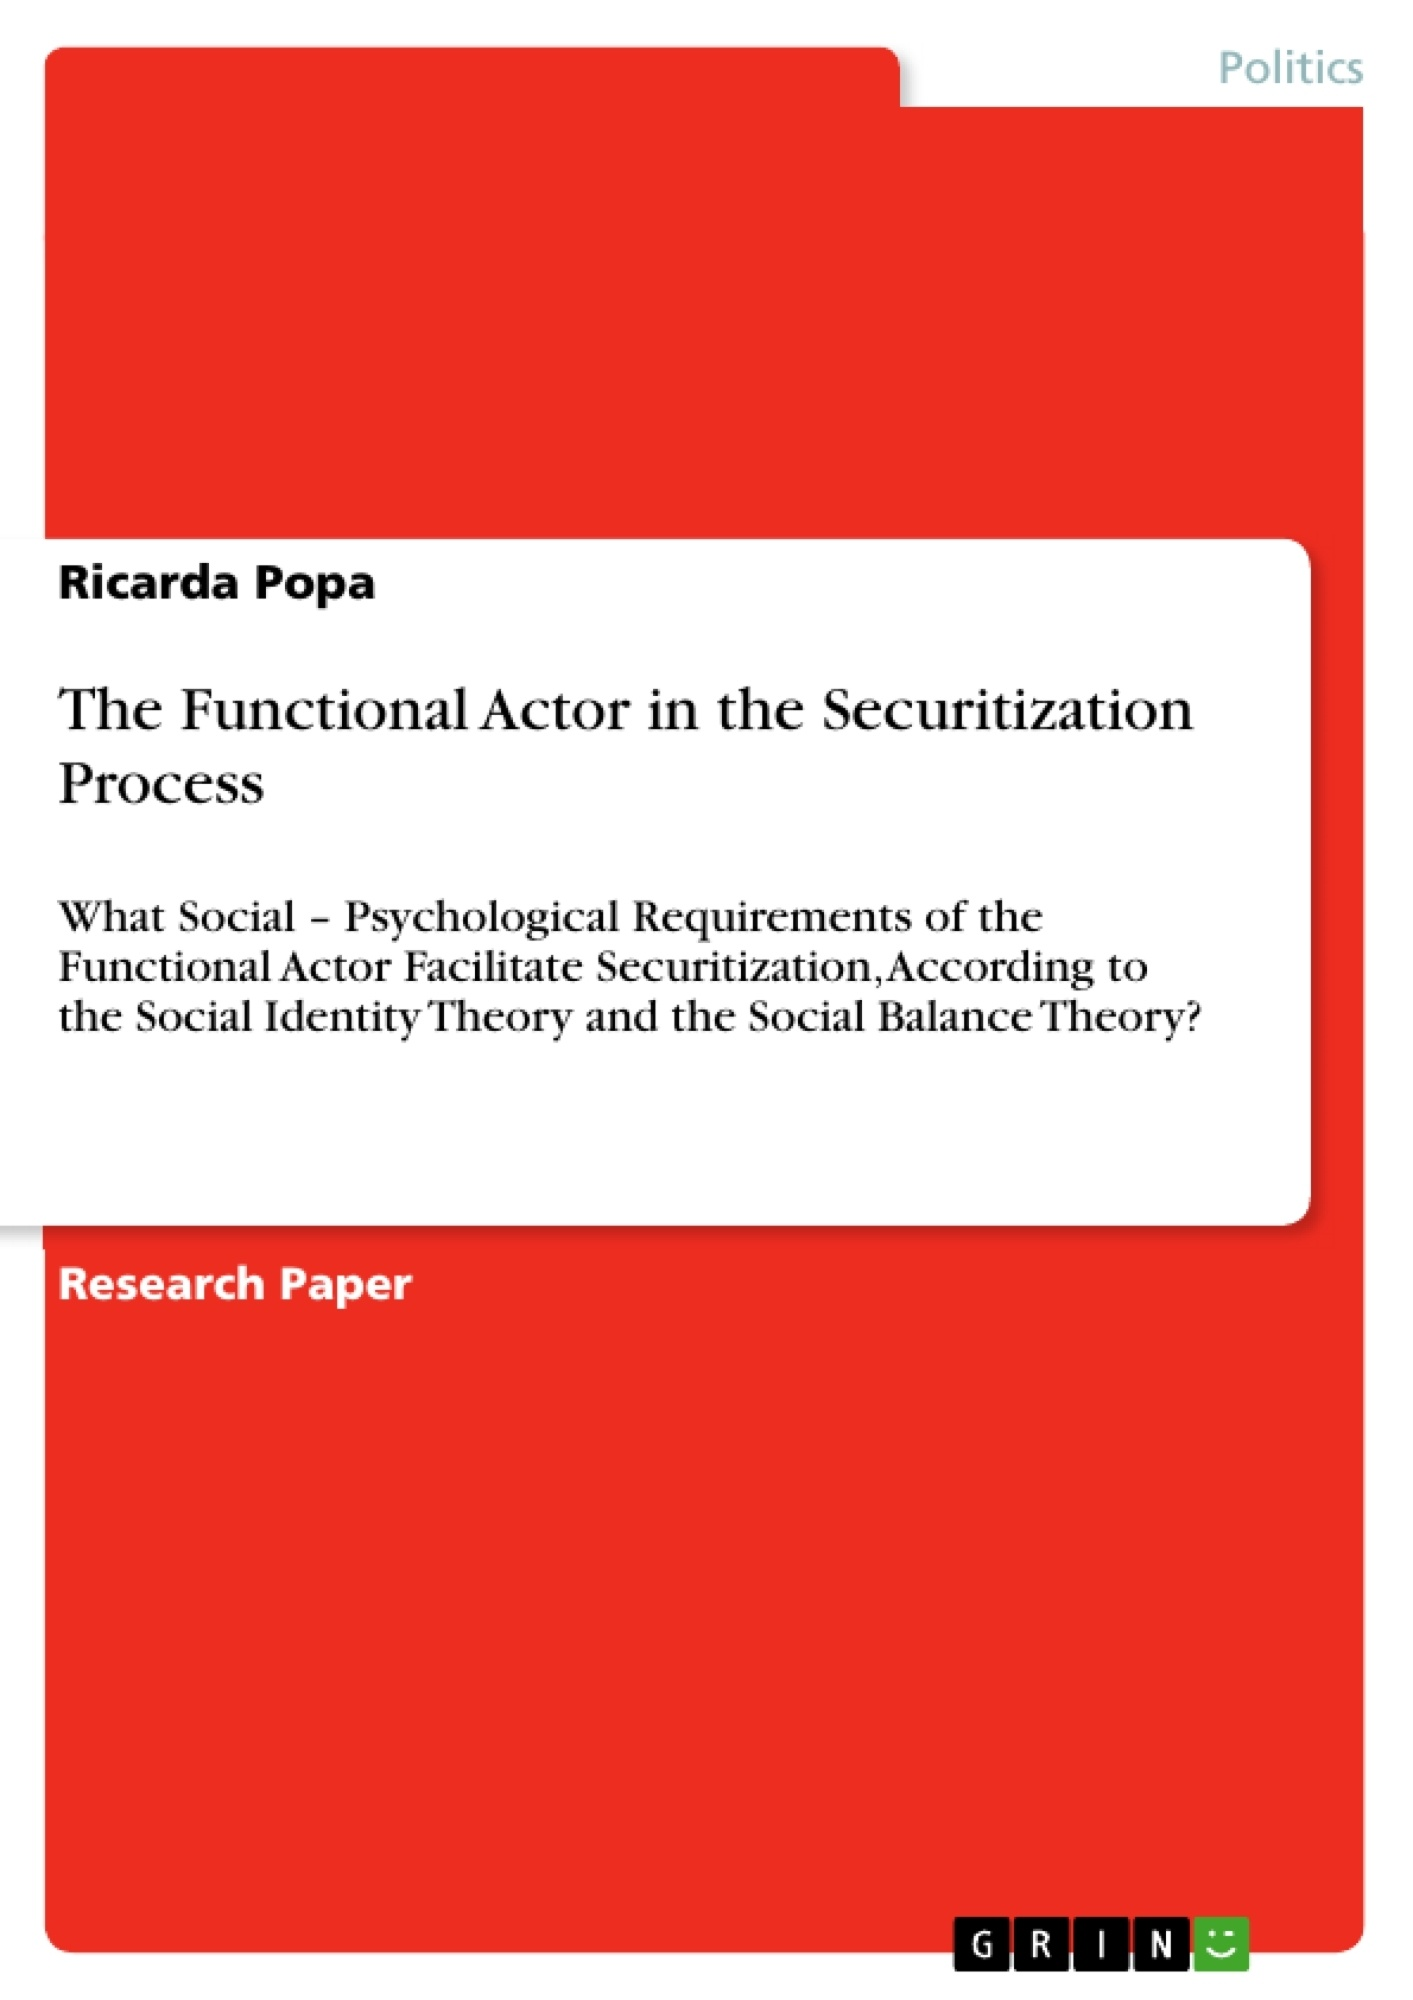 GRIN - The Functional Actor in the Securitization Process